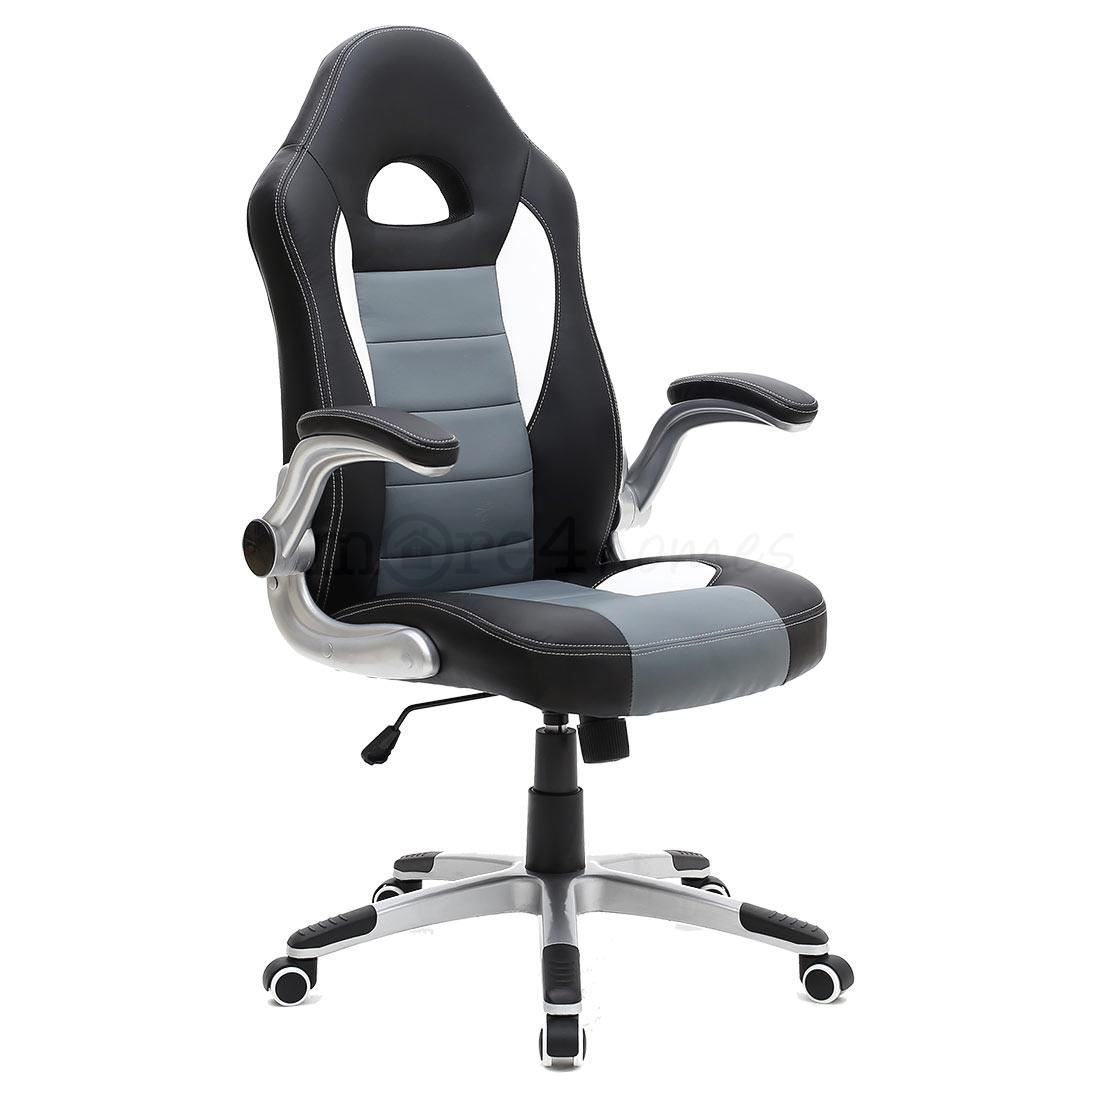 racing car office chair leather adjustable arms gaming desk bucket